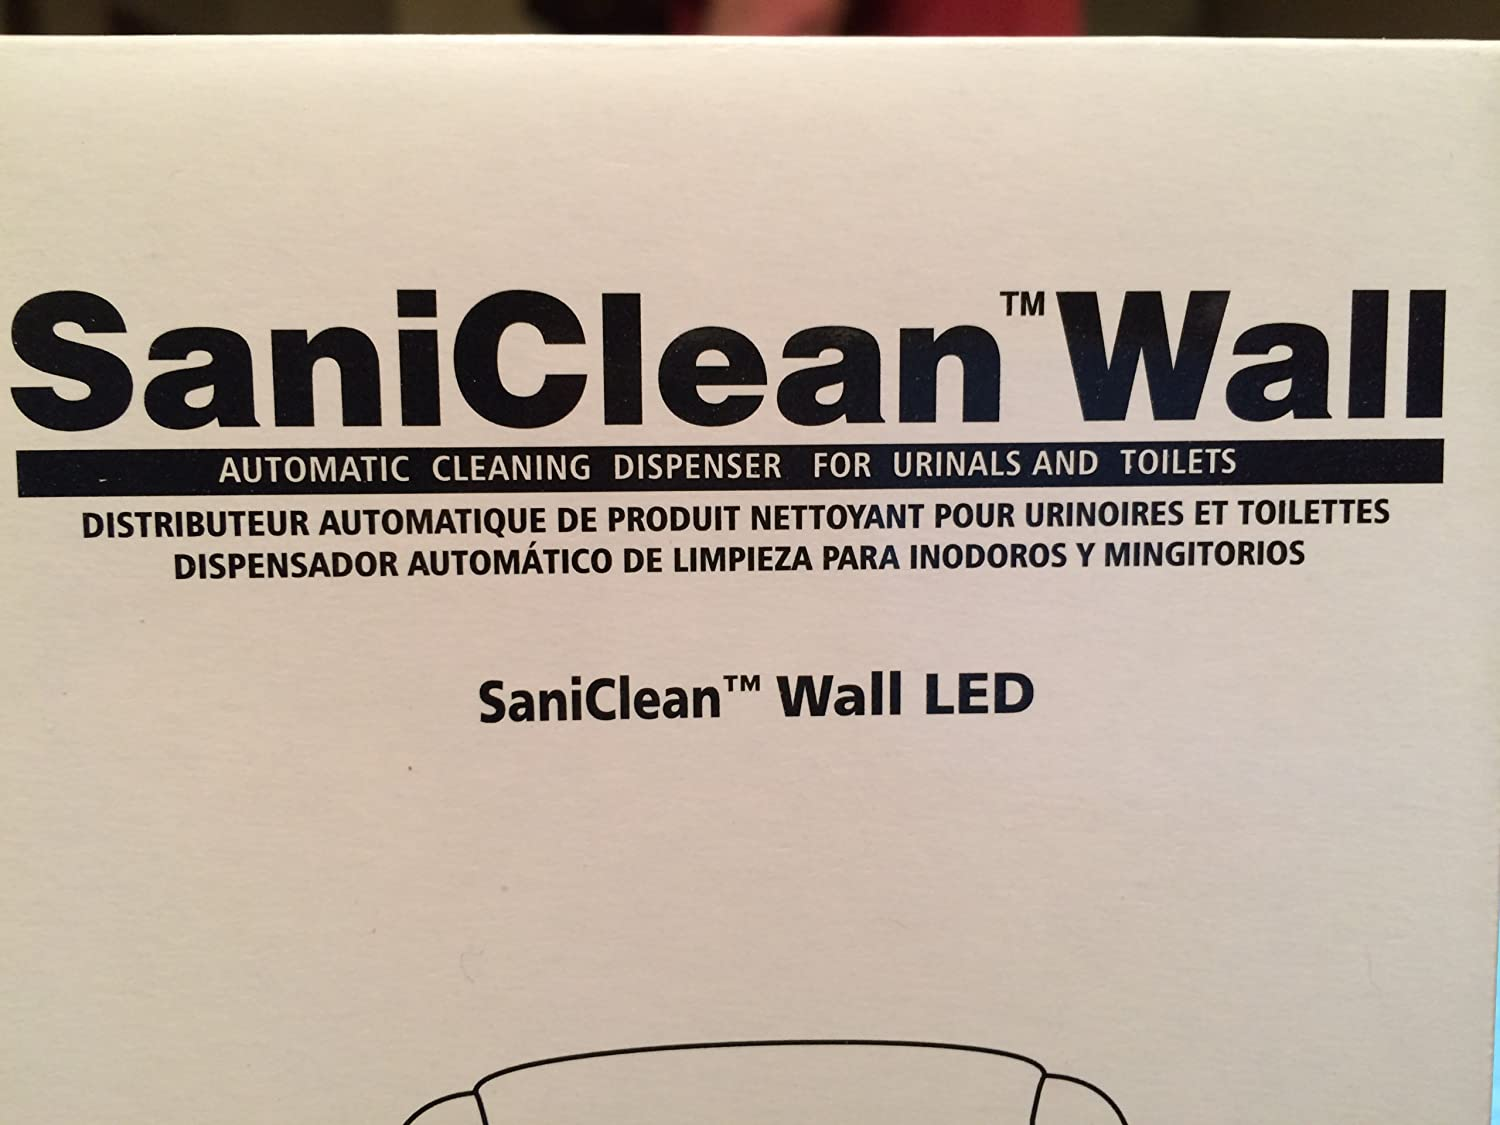 Amazon.com: SaniClean Wall Automatic Fixture Cleaning System LED Dispenser Continuous Cleaning and Drain Maintenance System for Toilets and Urinals: Office ...